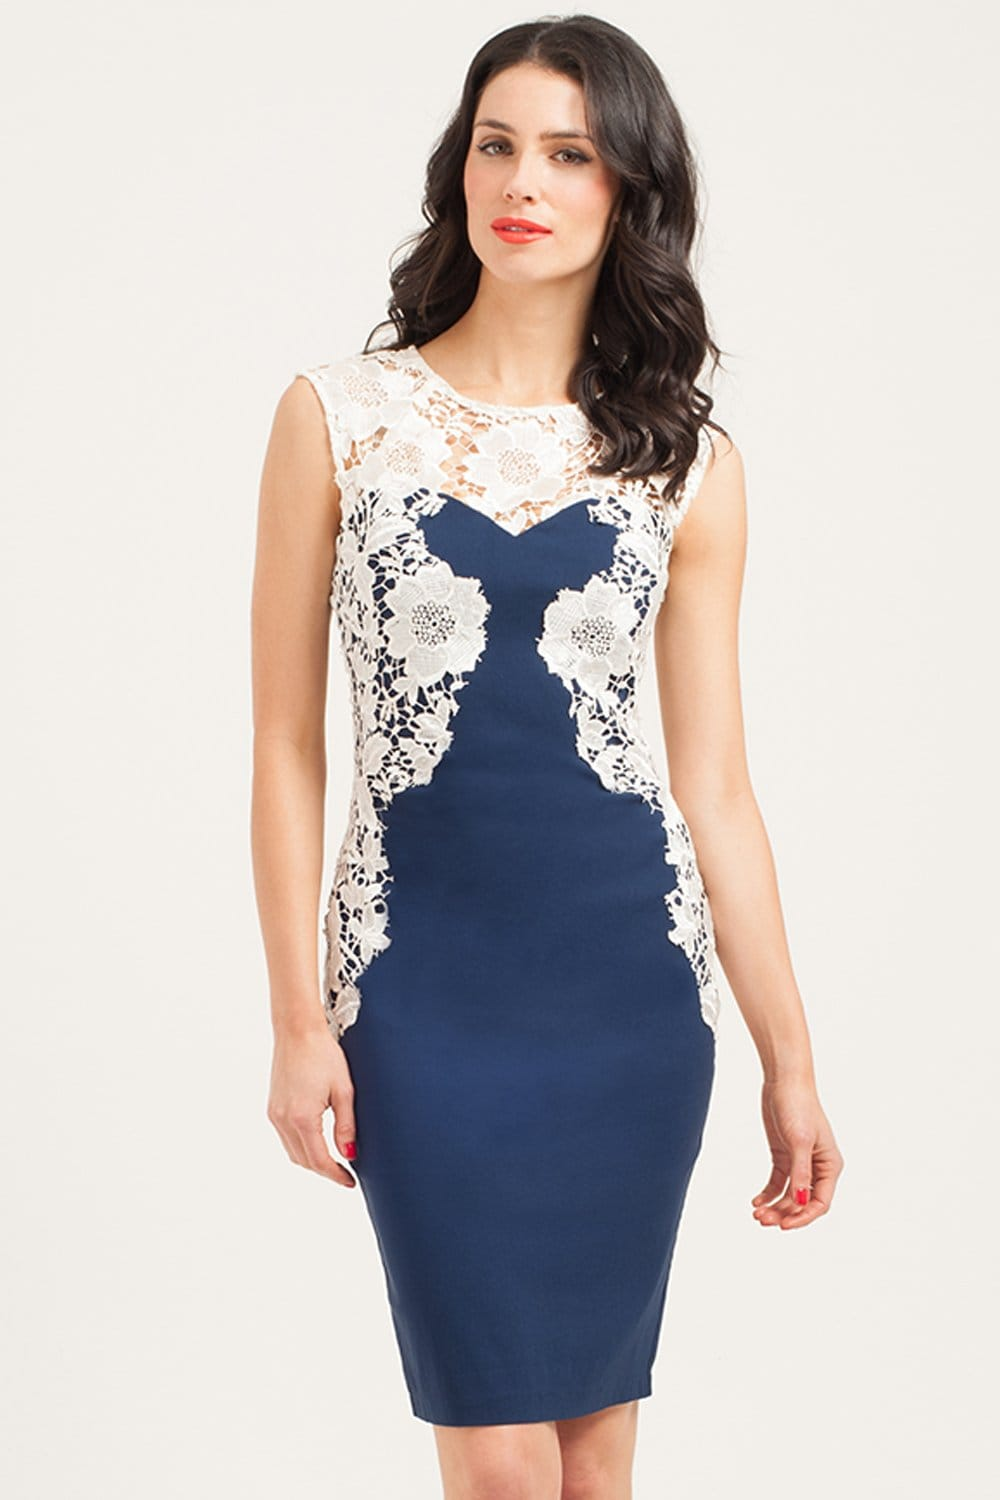 Free shipping and returns on Lace Cocktail & Party Dresses at roeprocjfc.ga